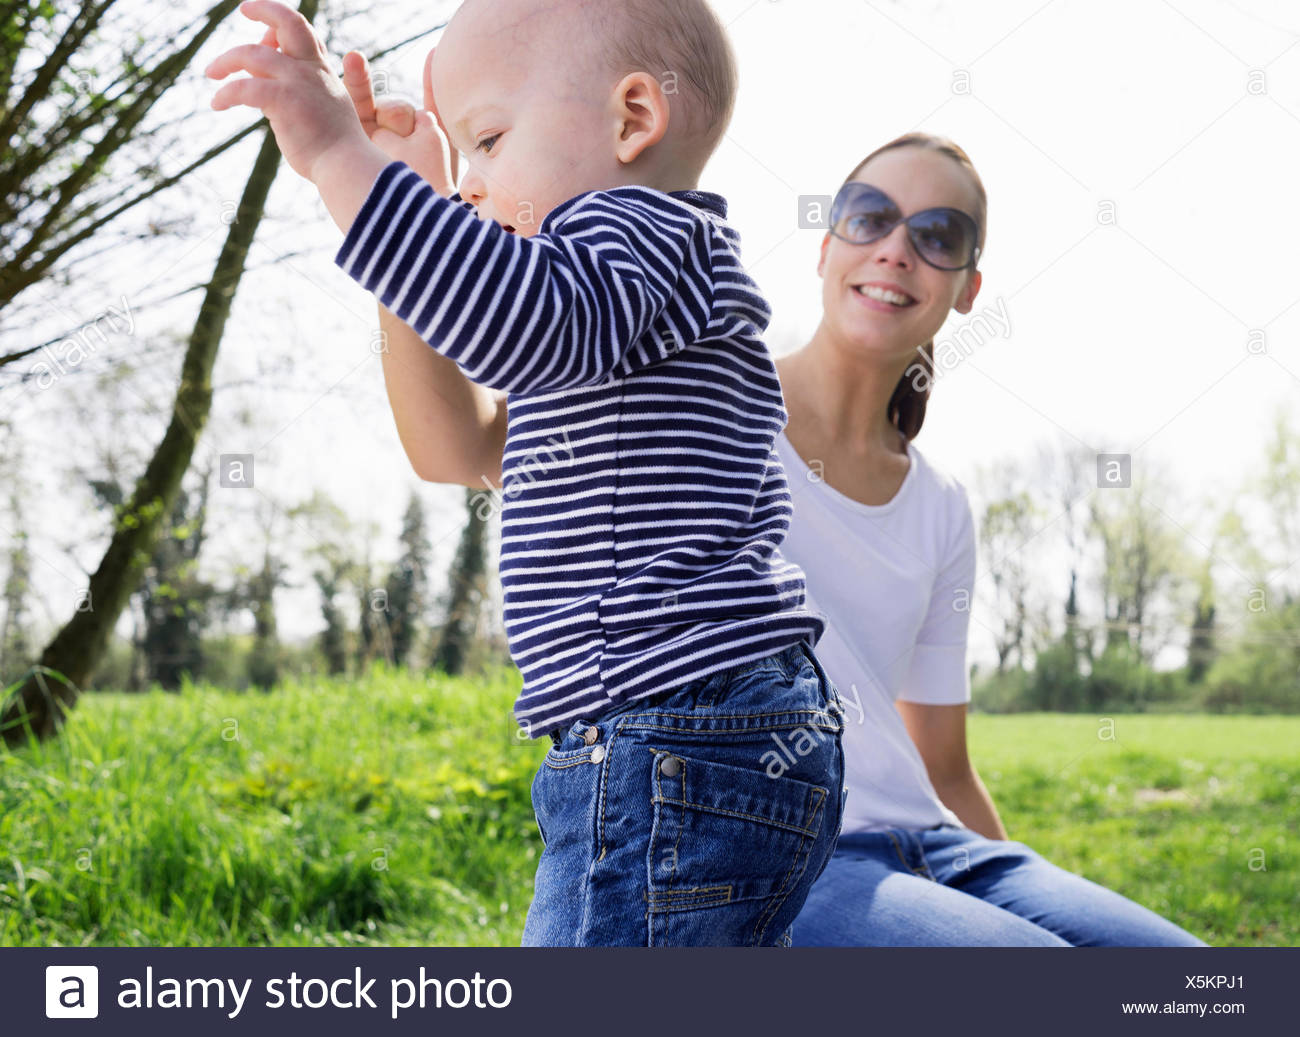 Young mother helping baby son toddle in field - Stock Image